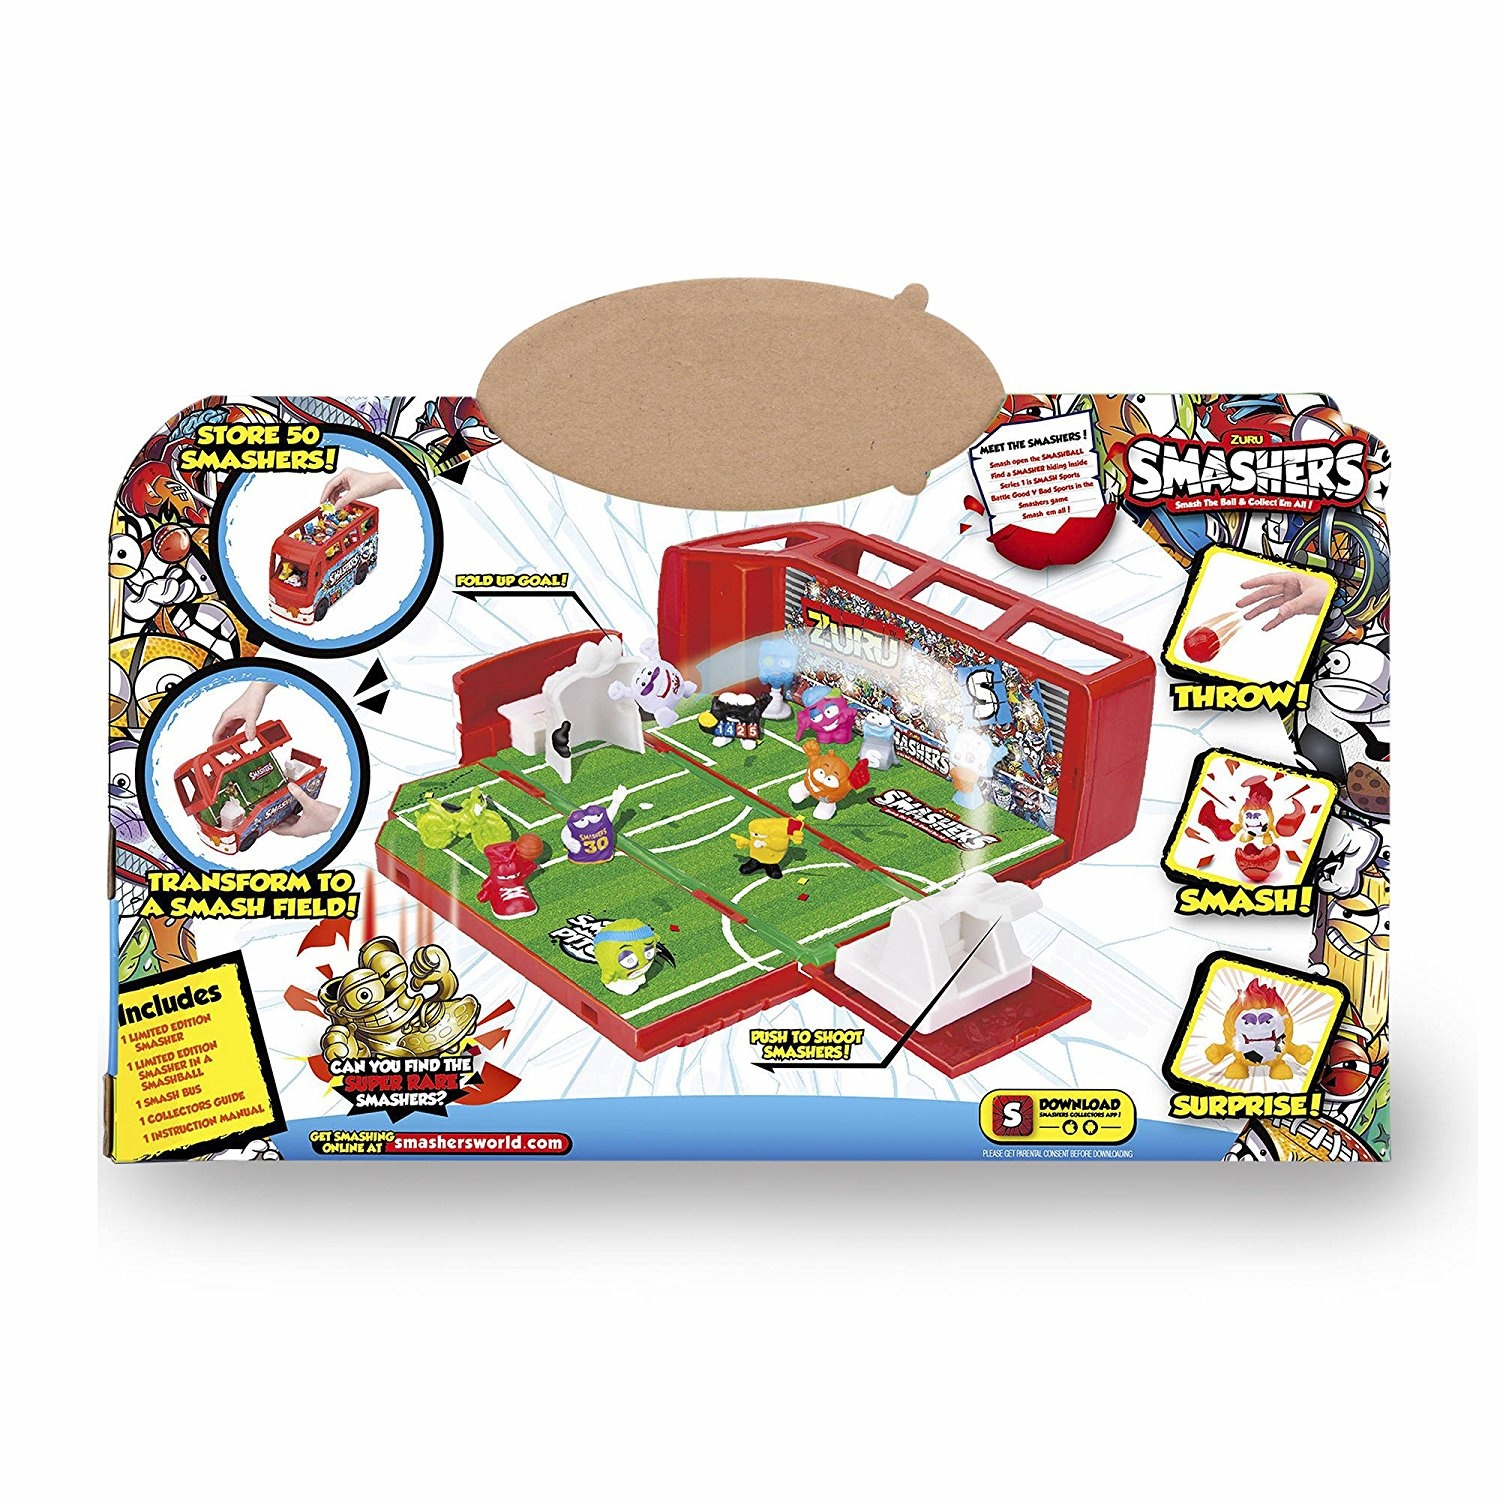 Smashers/ Famous 700014384 /Football Bus with 2/Figures,